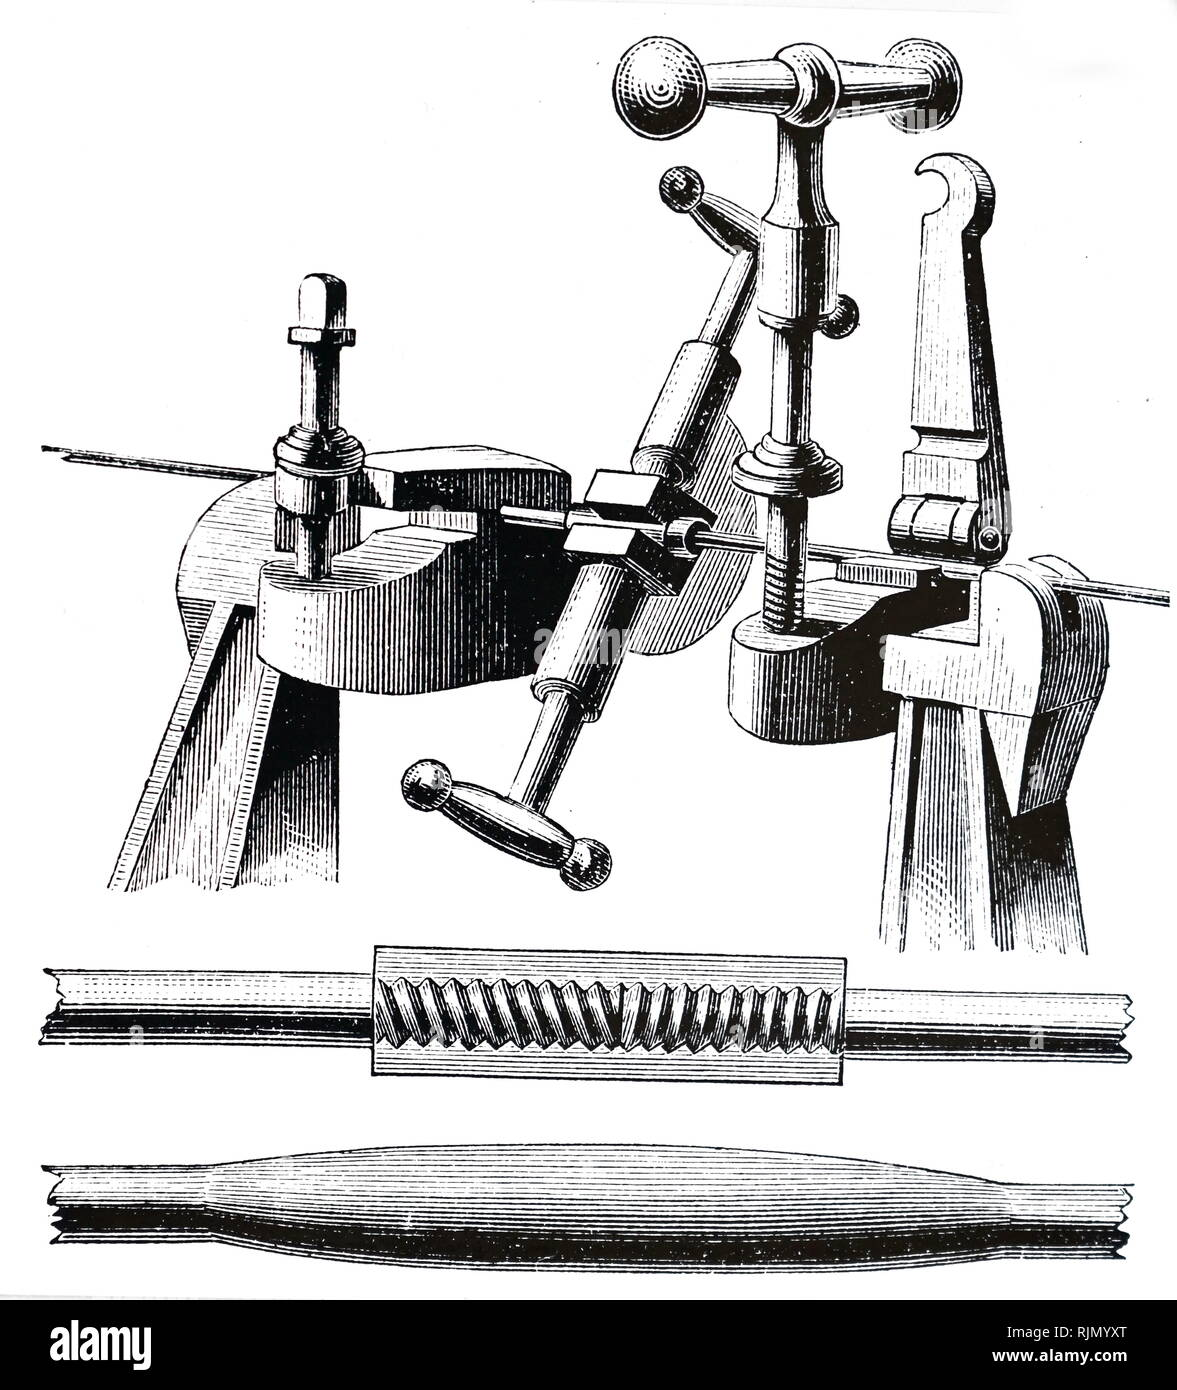 Illustration showing sectional view of a cable anchor, from the Brooklyn Suspension Bridge, New York, designed and built by John Augustus Roebling (1806-1869), and his son Washington Augustus Roebling (1837-1926): opened 1883. Arrangement of 19 Strands, each of. 278 wires, which made up the main cables. 1883 - Stock Image